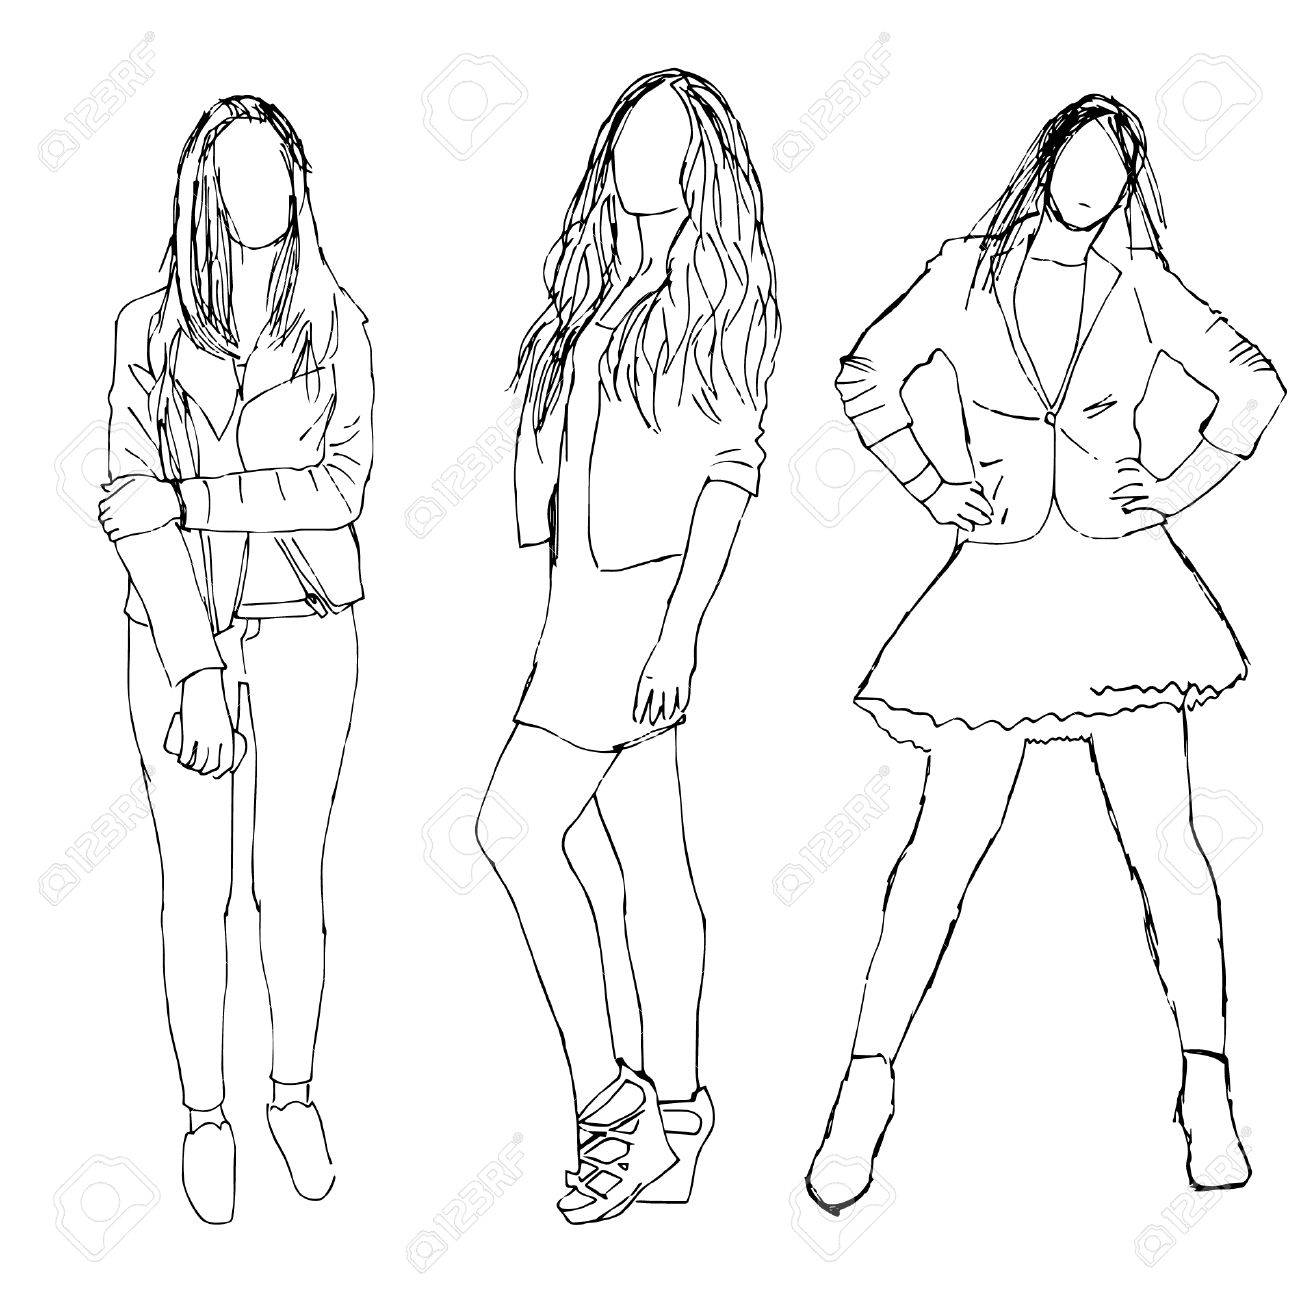 1300x1300 Sketch Of People. Three Girls Royalty Free Cliparts, Vectors,